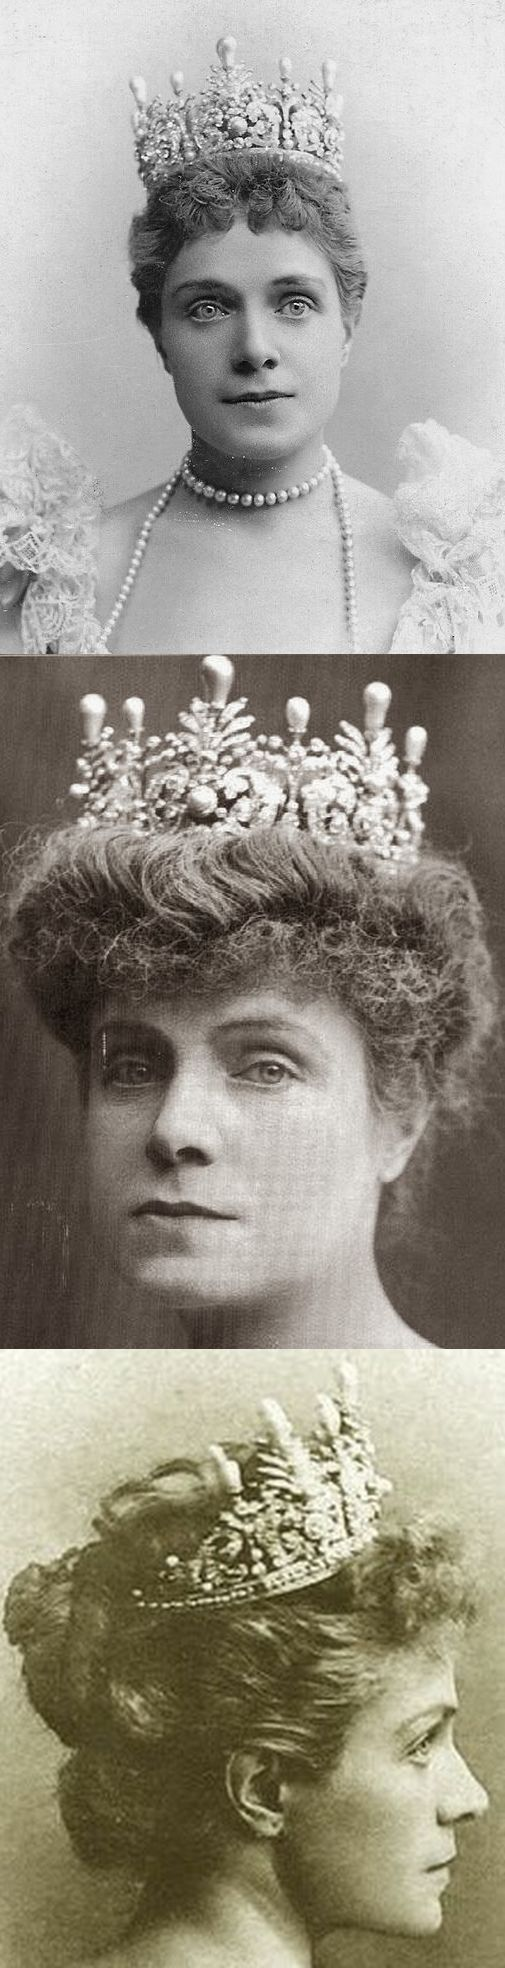 Diamond and pearl tiara by Del Mazo for Infanta Eulalia of Spain, Duchess of Galliera; from her sister-in-law, Queen Maria Christina of Spain, on the occasion of her 1886 marriage to Infante Antonio, Duke of Galliera.